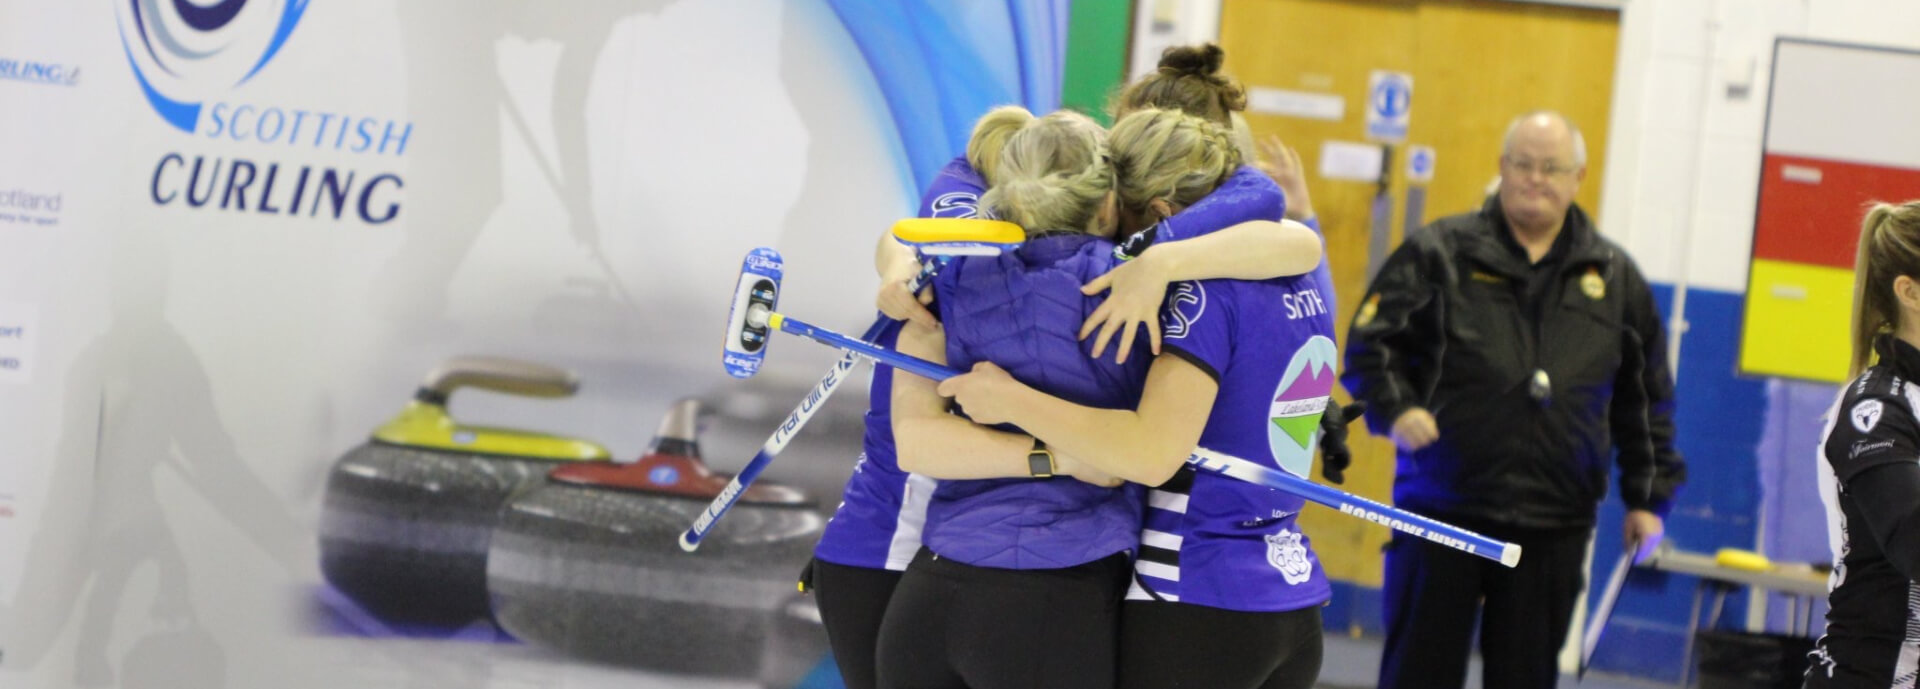 Team Jackson celebrating women's Scottish Curling Championship victory